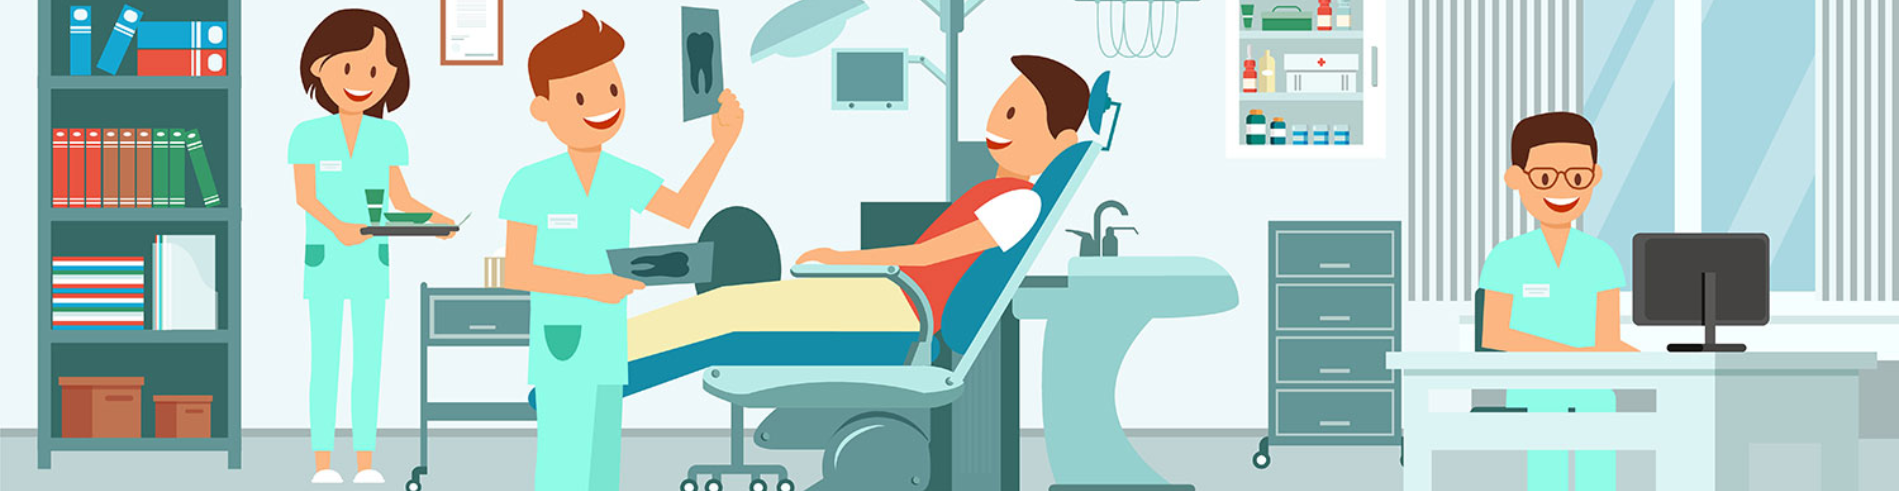 Graphic of a dental office with several workers and a patient